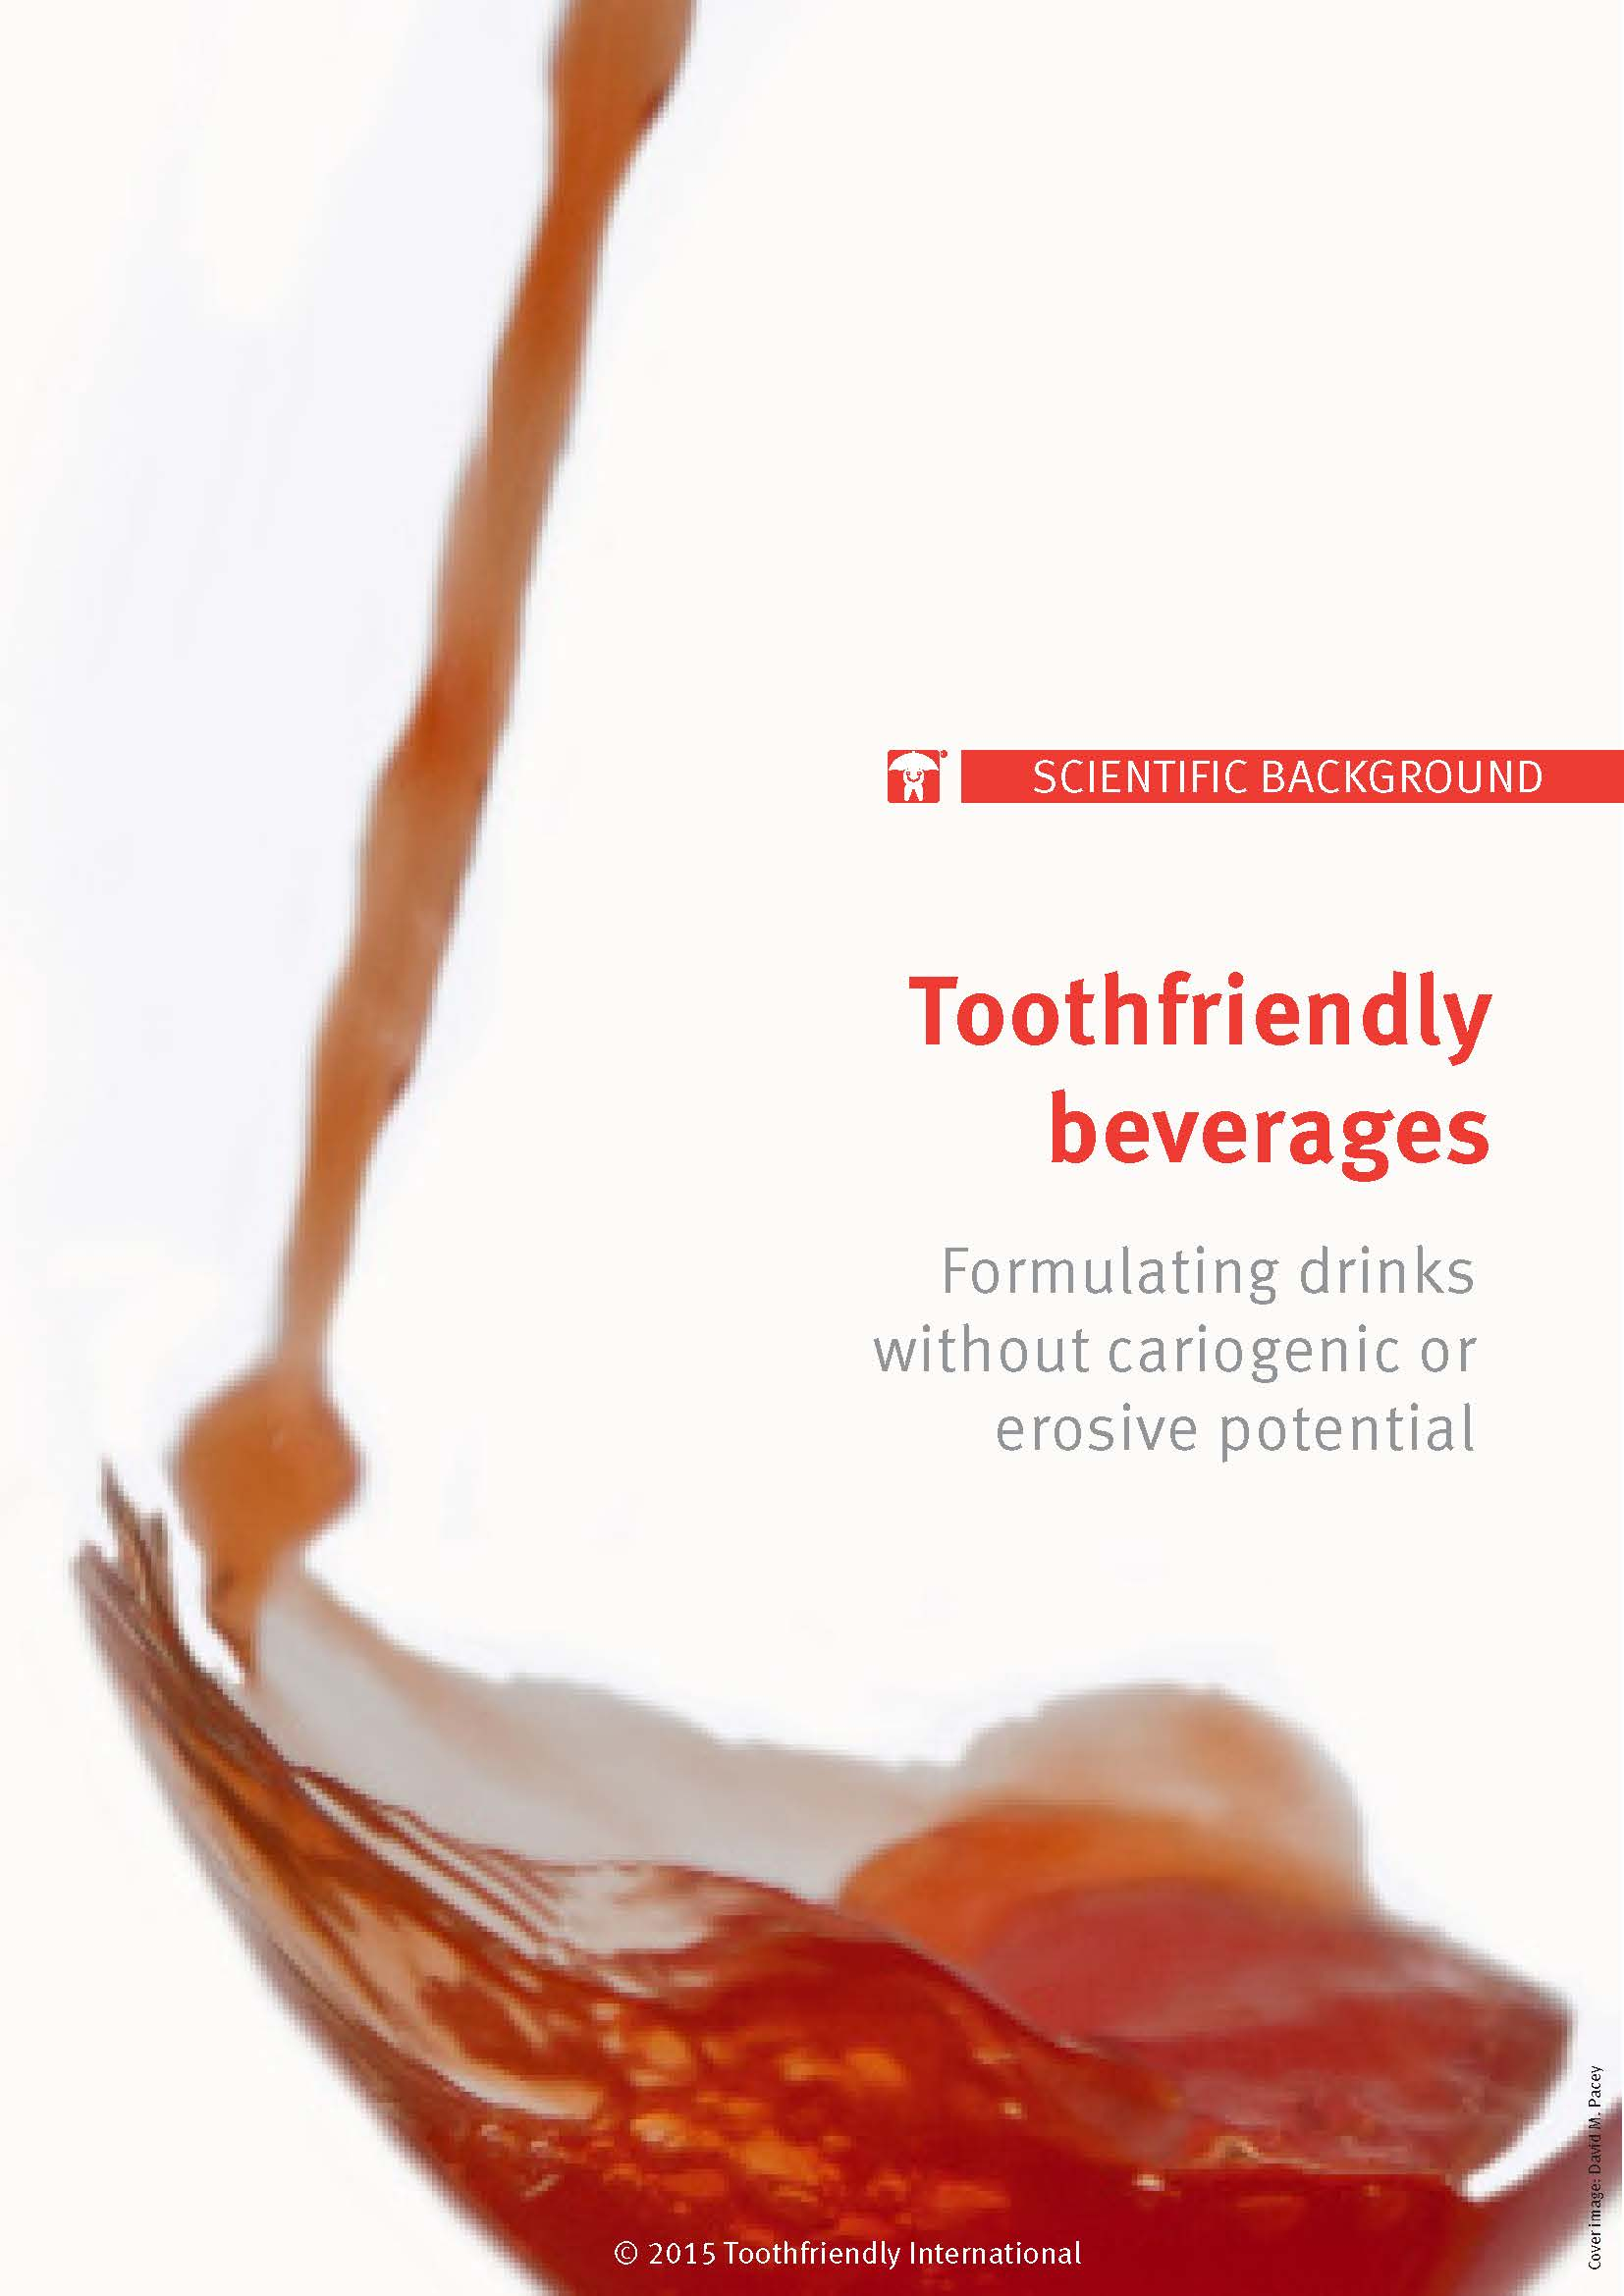 Toothfriendly beverages